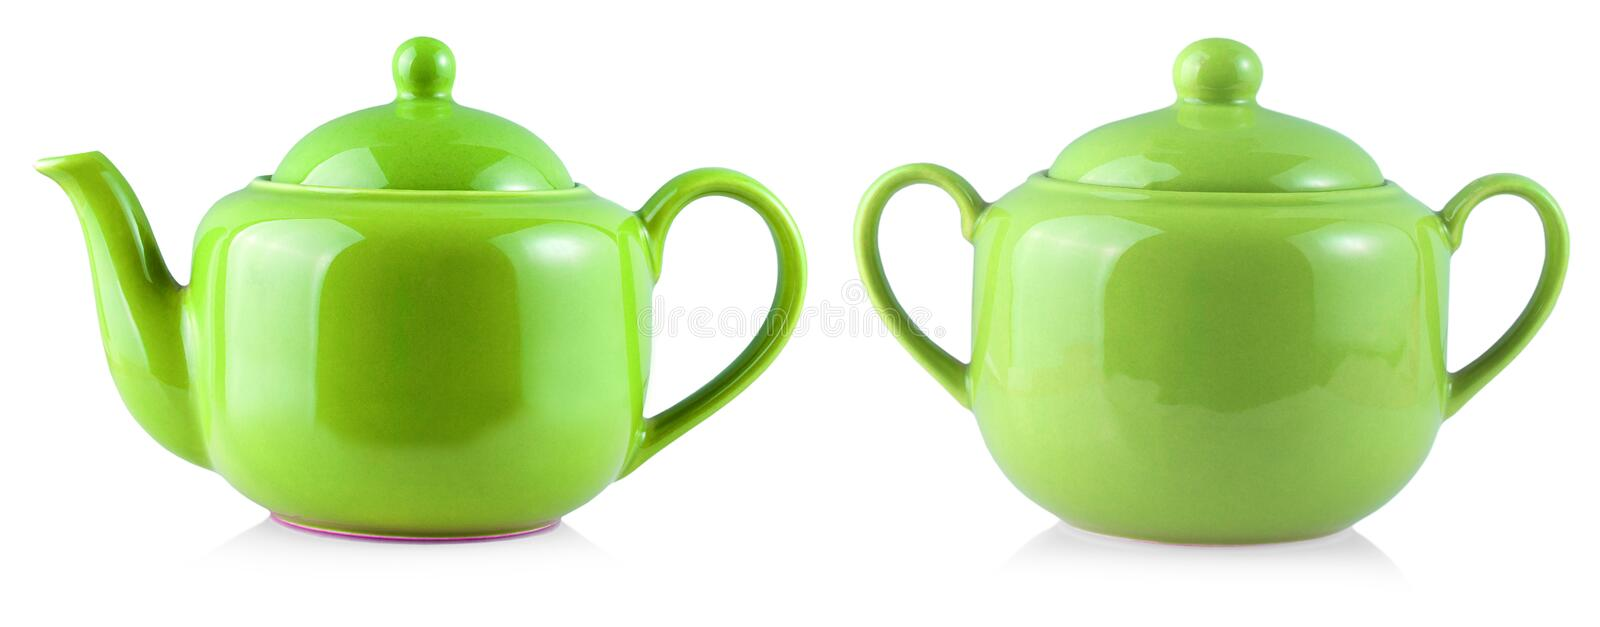 The Colored Teapot Kettle and sugar bowl Isolated On White Background. Colored Teapot Kettle and sugar bowl Isolated On White Background stock images